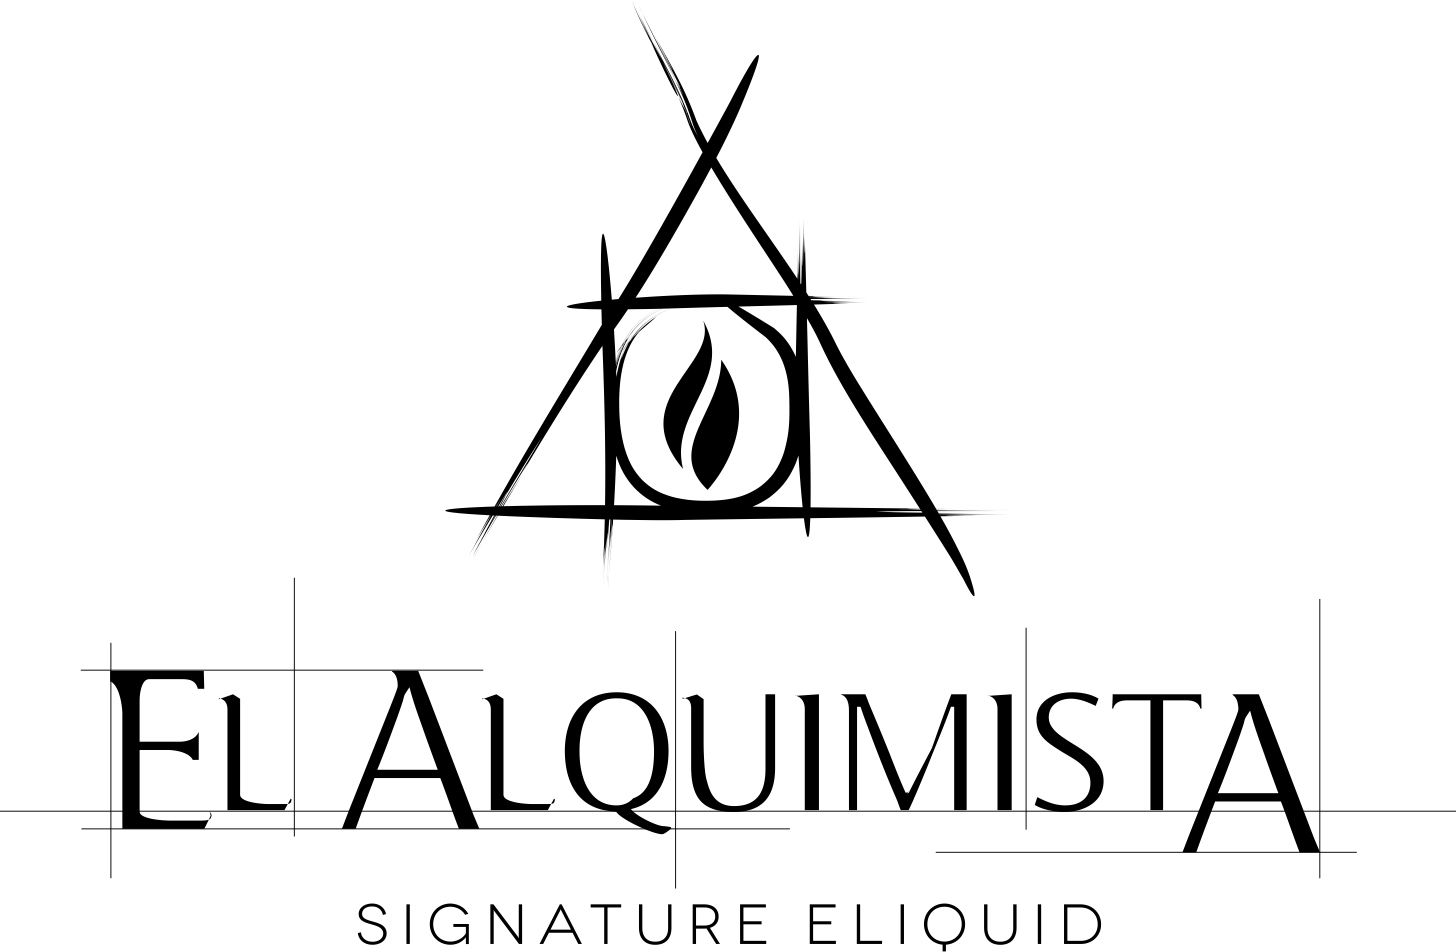 Create a recognizable logo for El Alquimista eLiquids